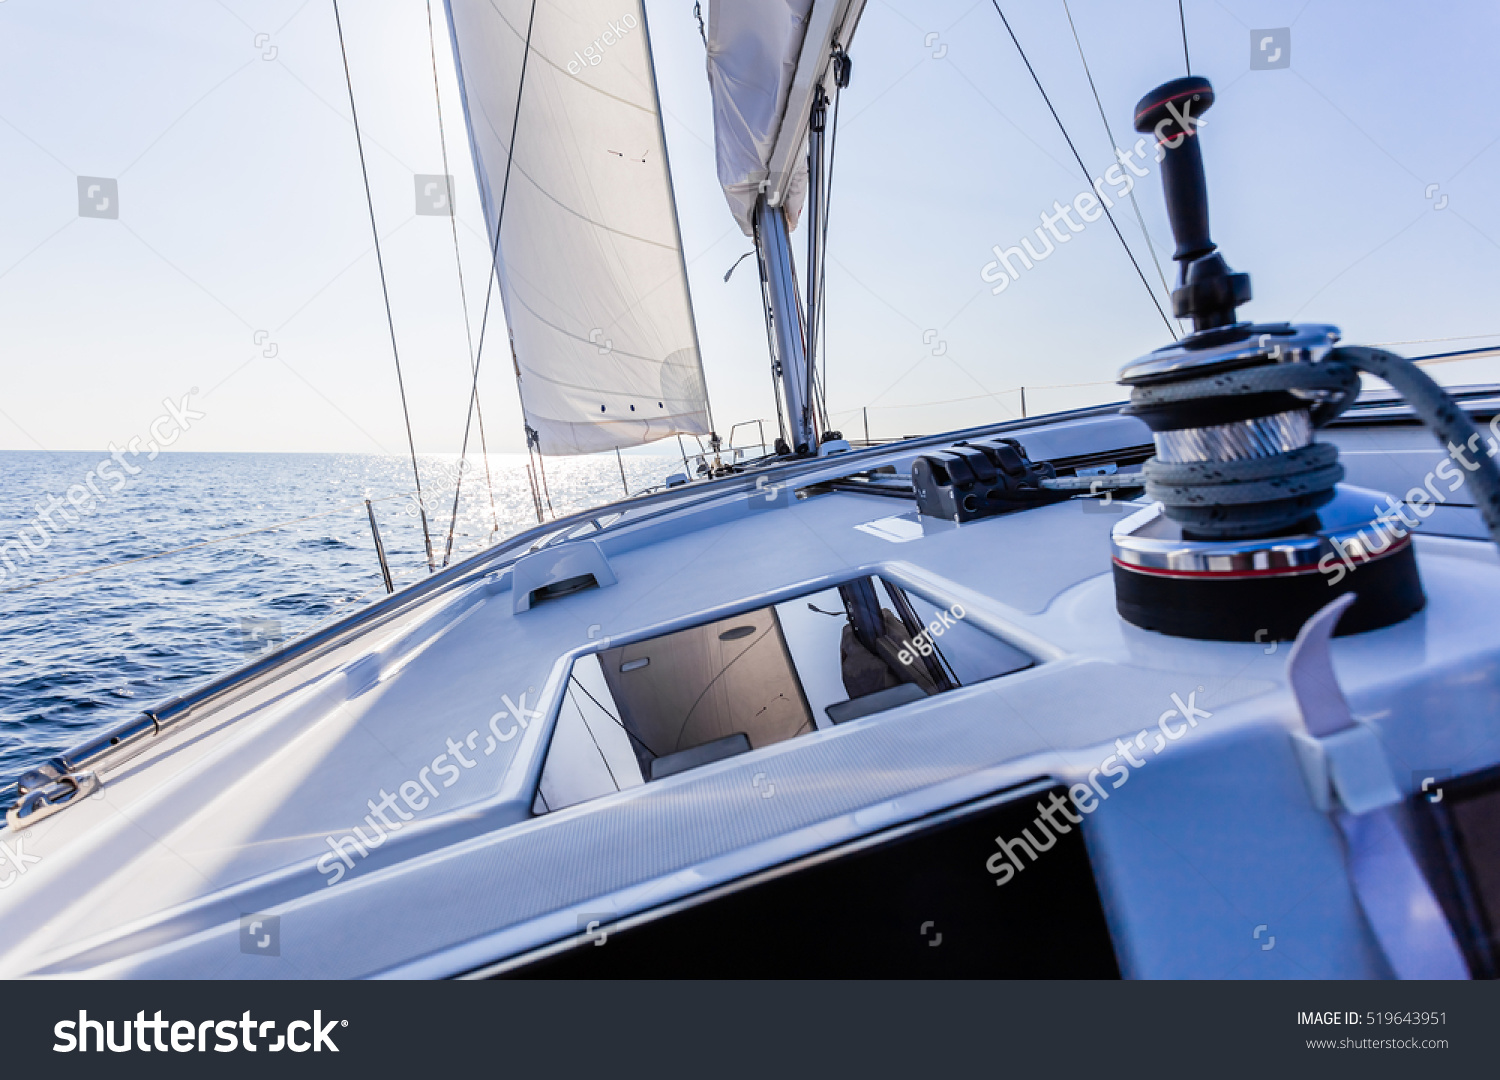 stock-photo-sail-vessel-surfing-on-the-sea-519643951